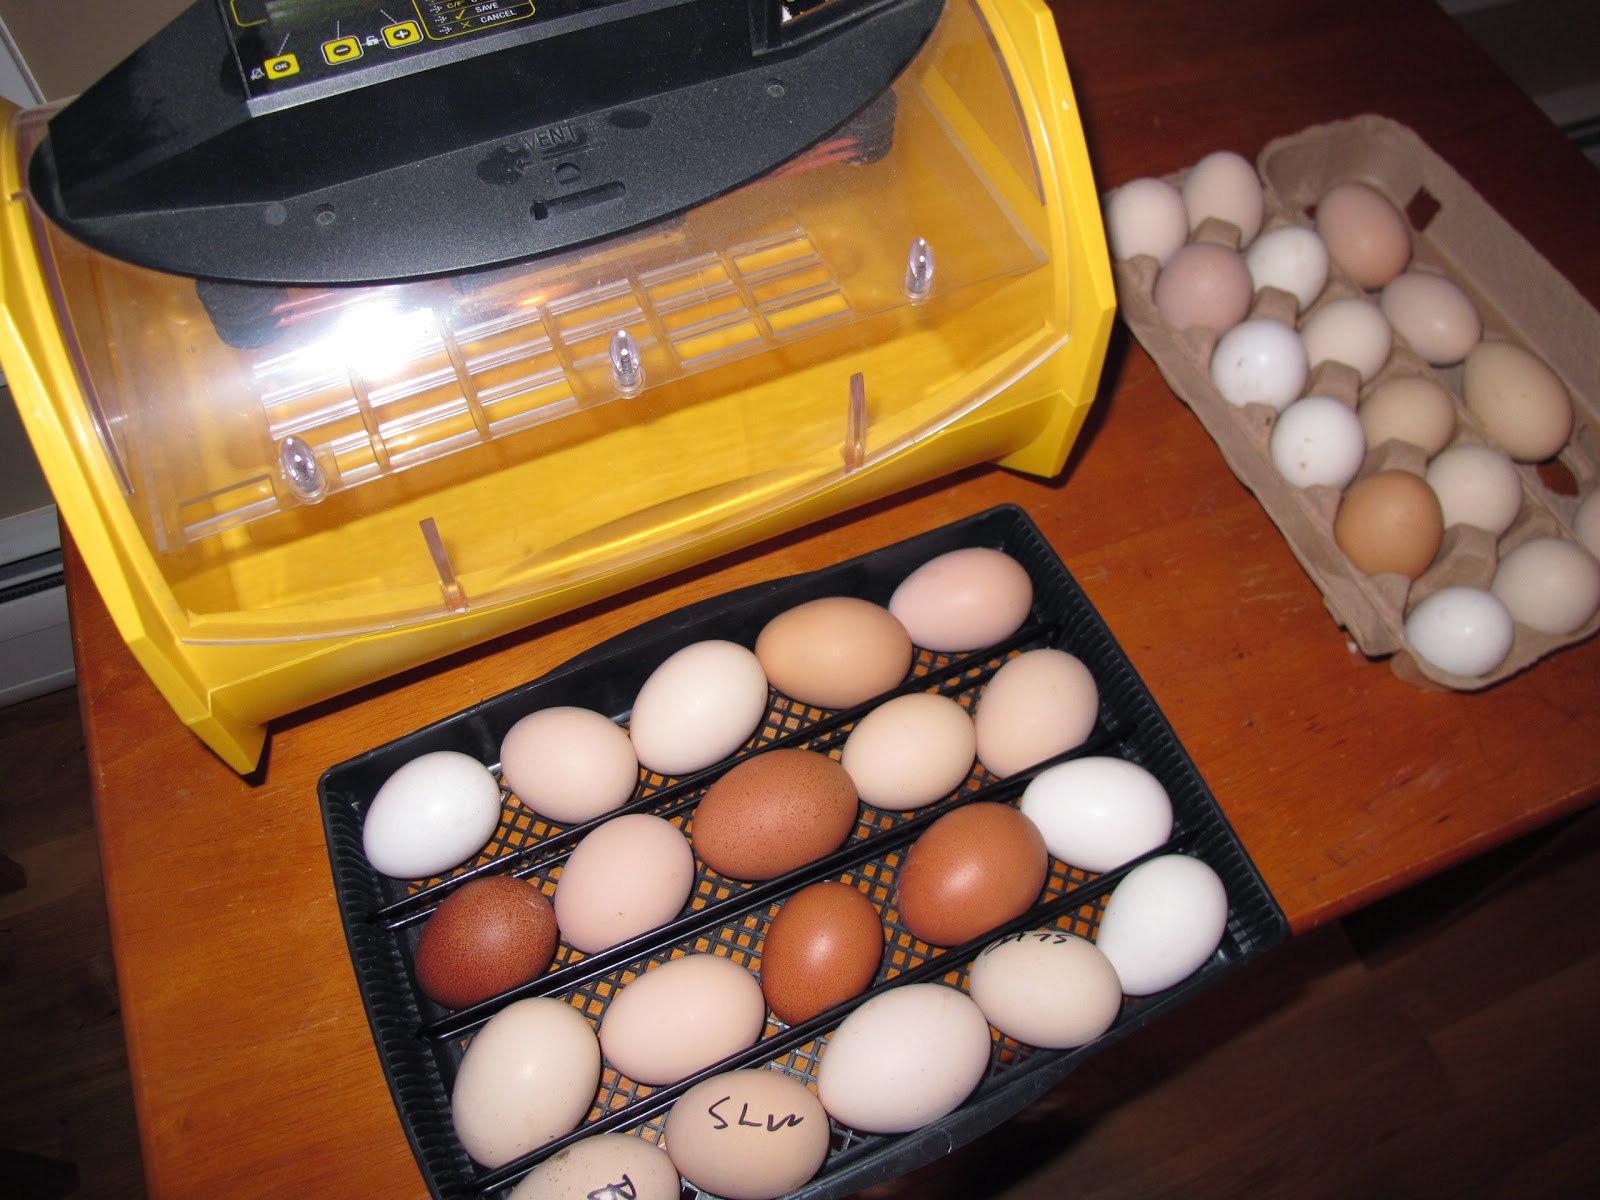 These hatching eggs were gifts from P. Allen Smith from his heritage breed pens.